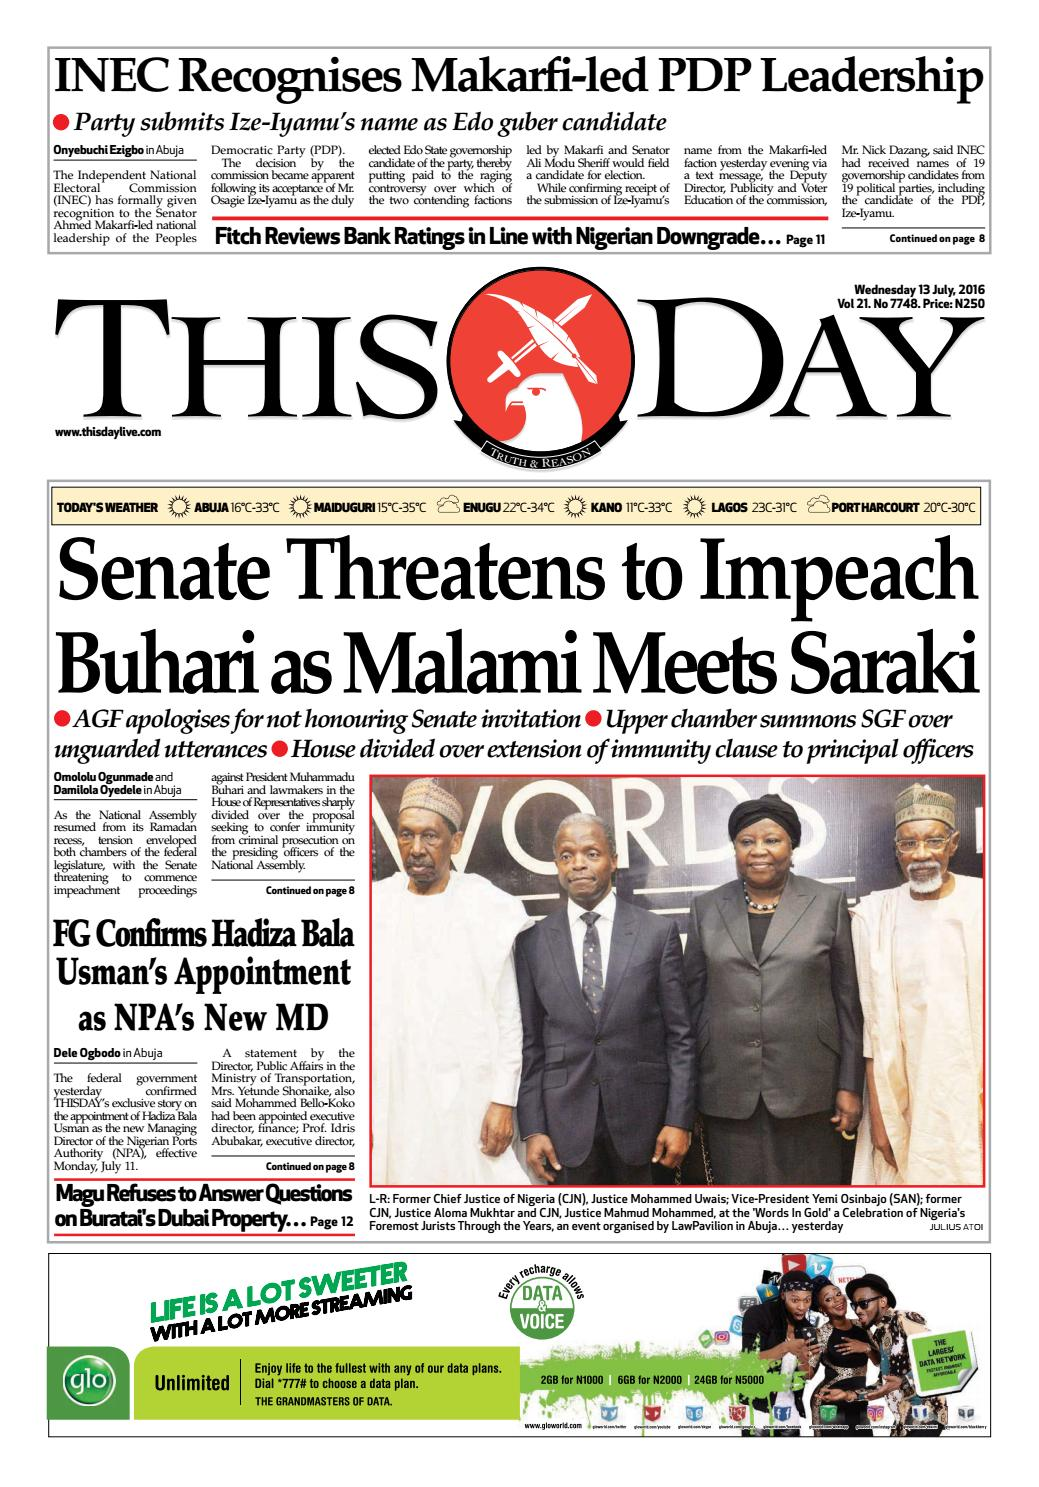 wednesday 13th july 2016 by thisday newspapers ltd issuu - Edekors De